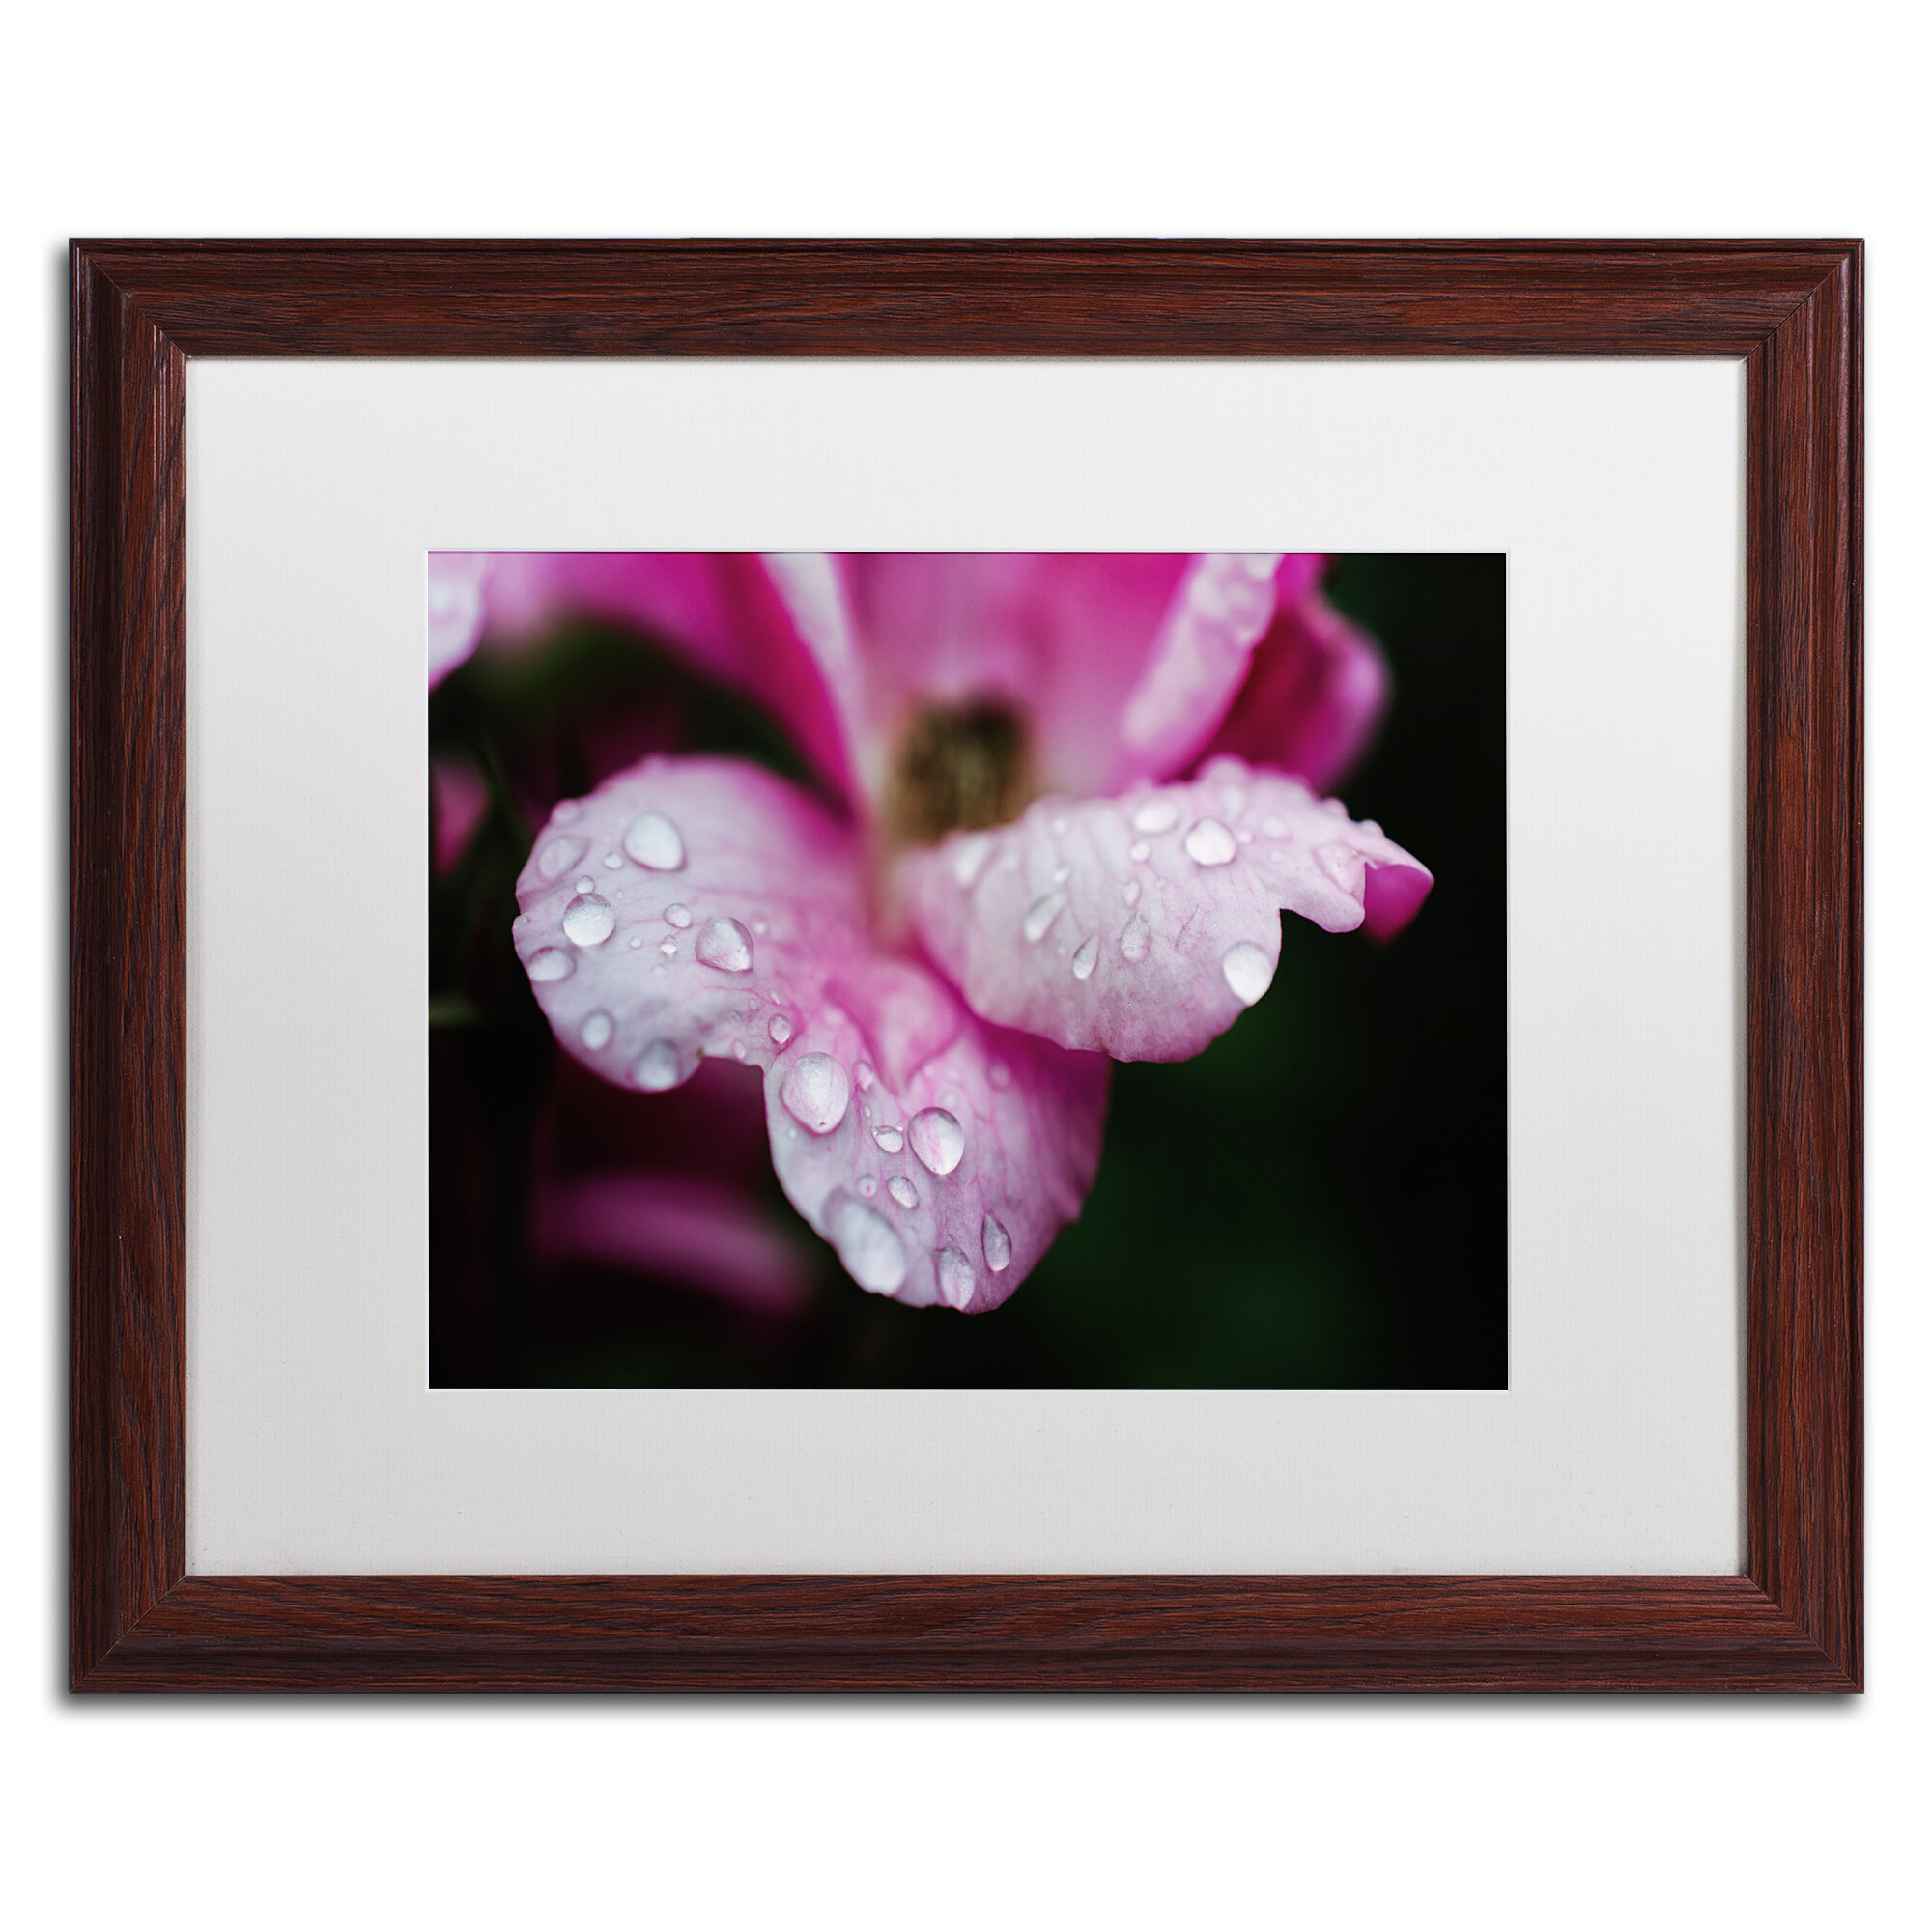 Trademark Art Raindrops On Wild Rose Color Framed Photographic Print Wayfair